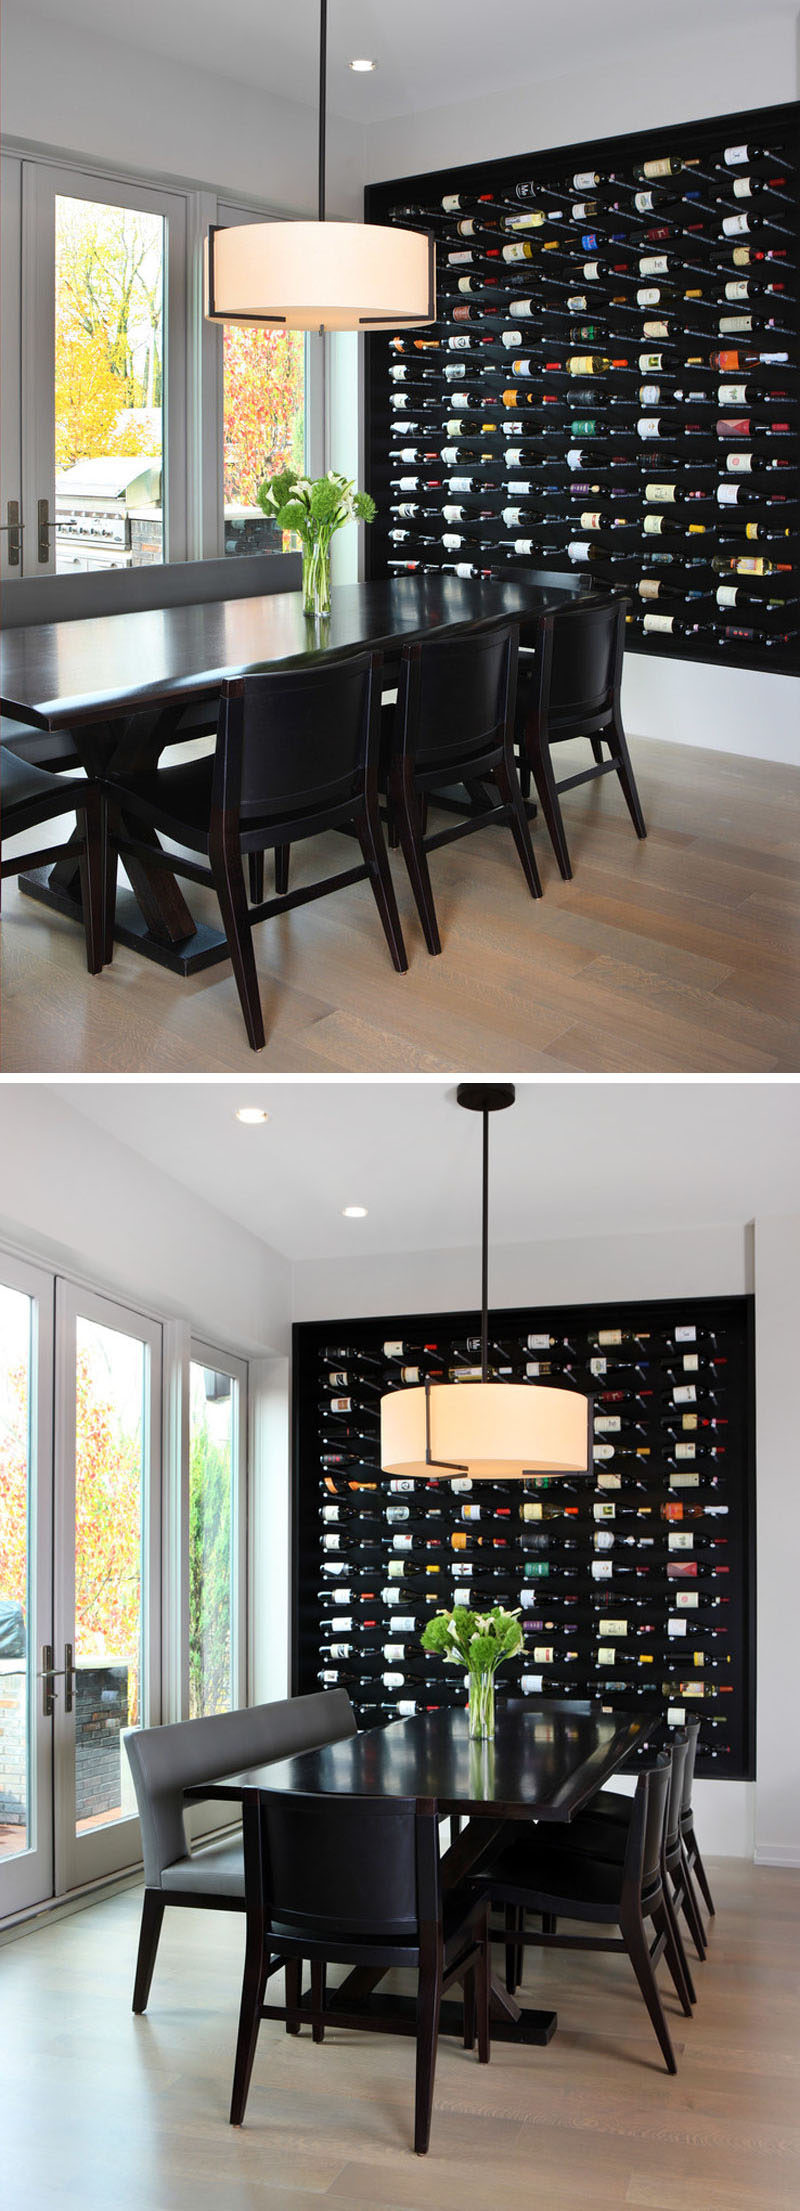 Wine Rack Ideas - Show Off Your Bottles With A Wall Mounted Display // This large wall mounted display in black lets the colors of the labels really stand out and eliminates the need for a statement art piece.